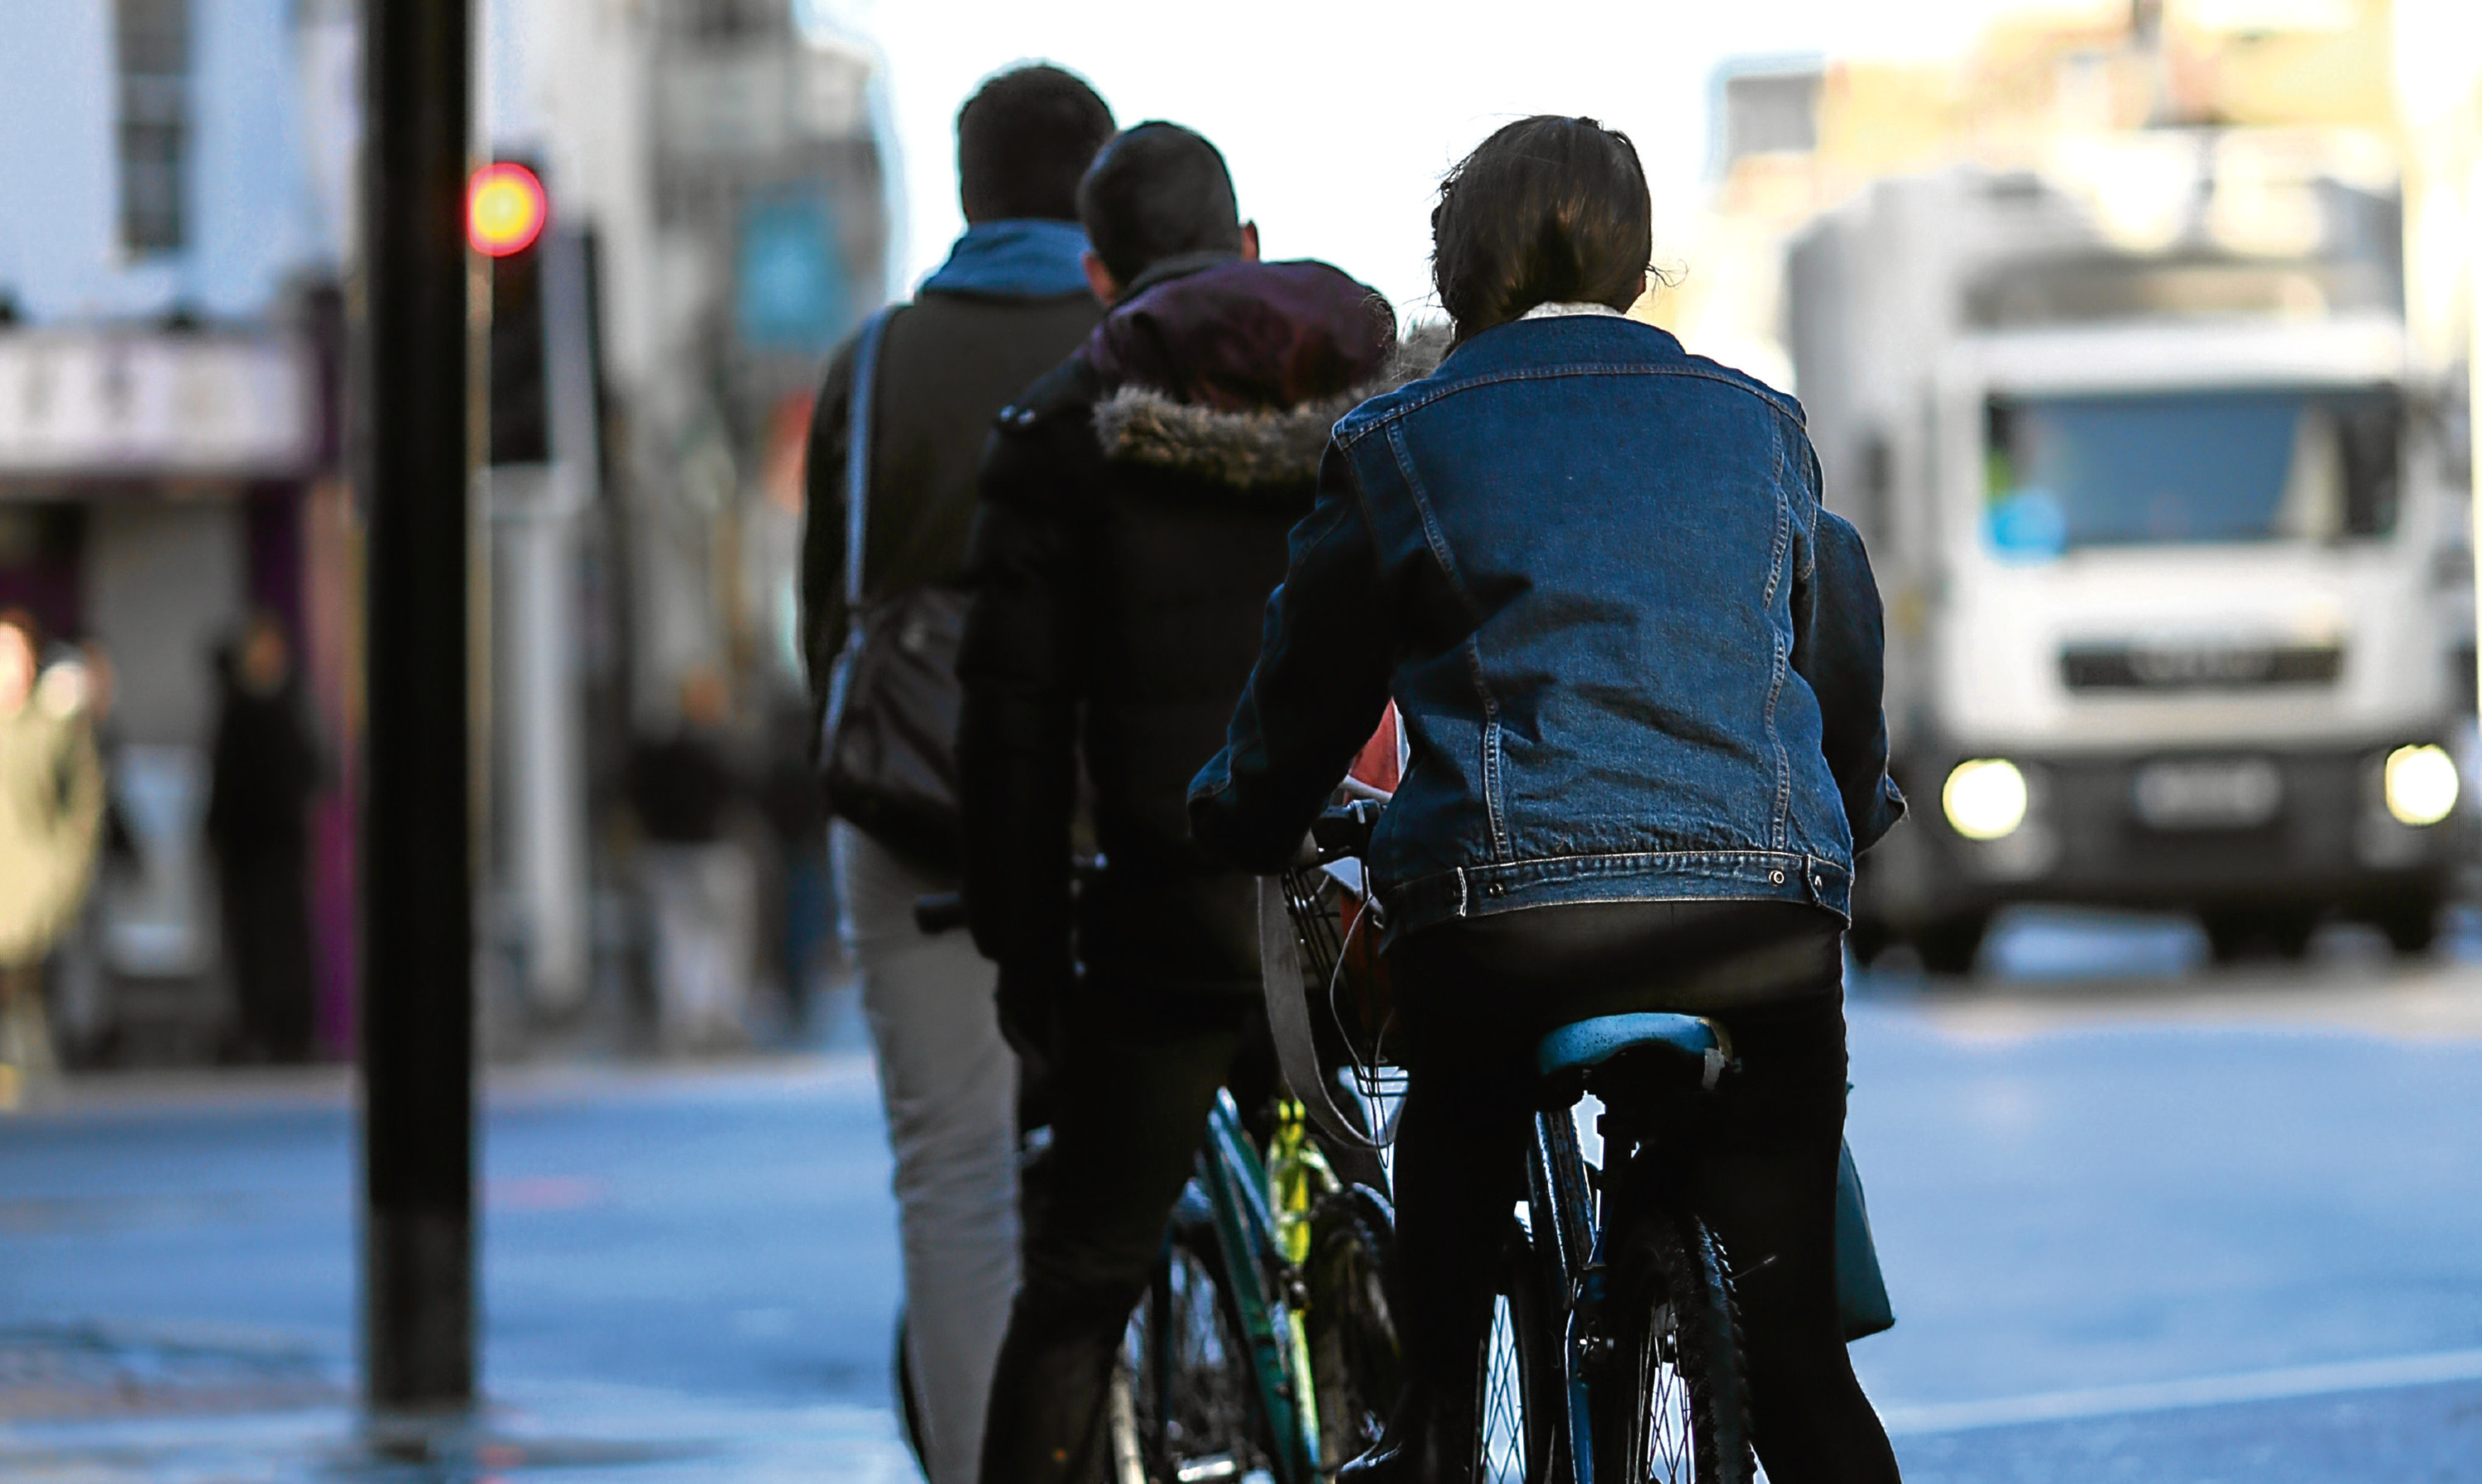 Should cyclists be made to pay for road use?